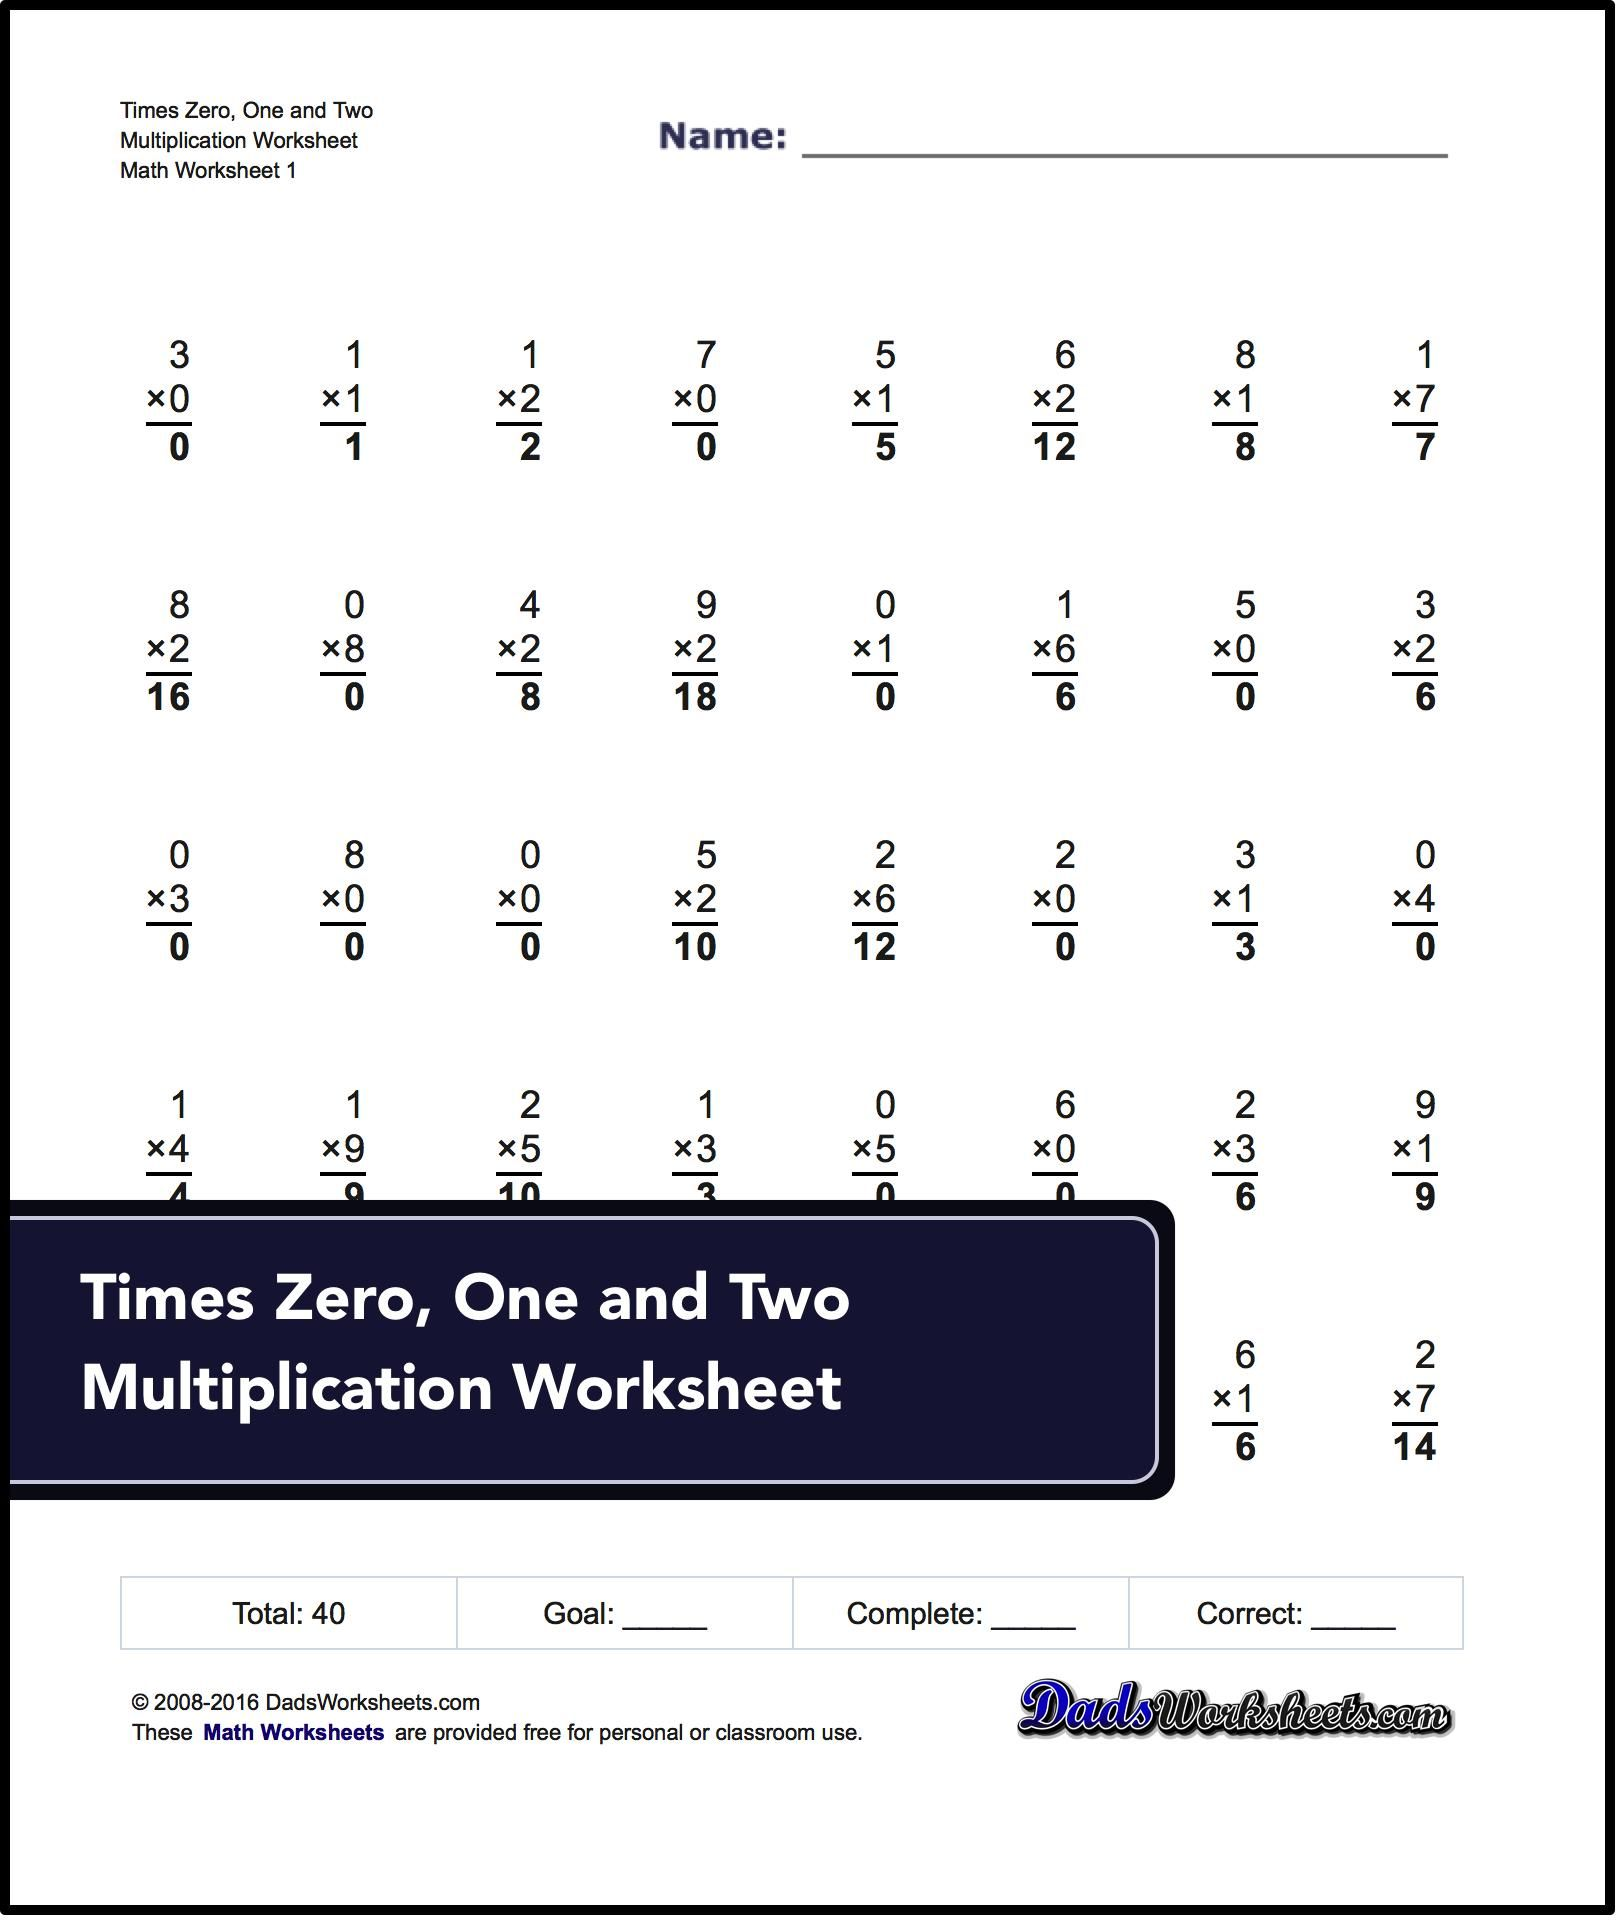 Conventional times table math worksheets. These multiplication ...